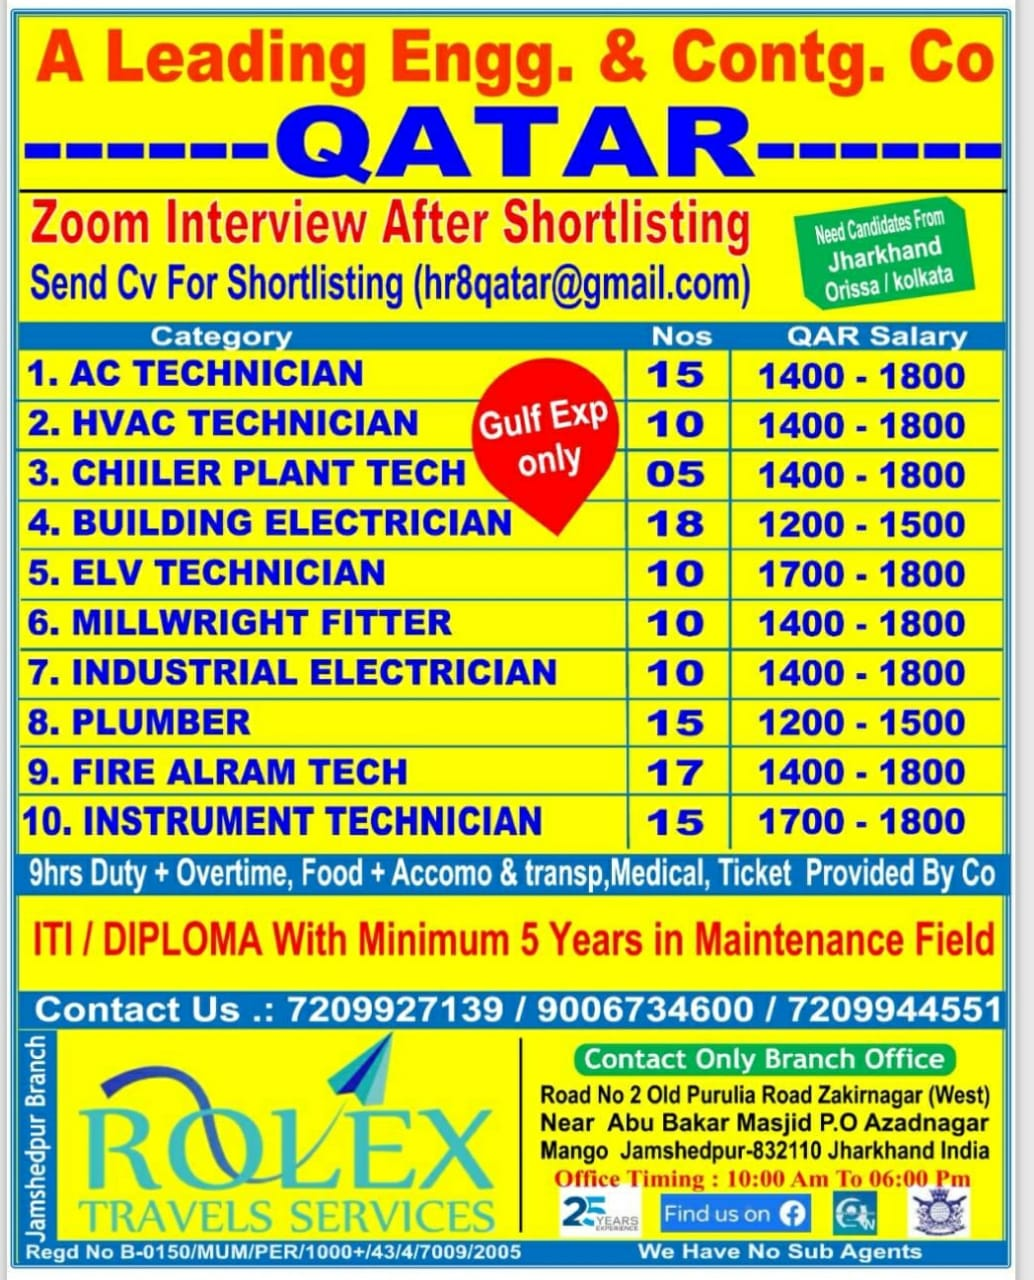 ENGG. & CONTG. CO QATAR